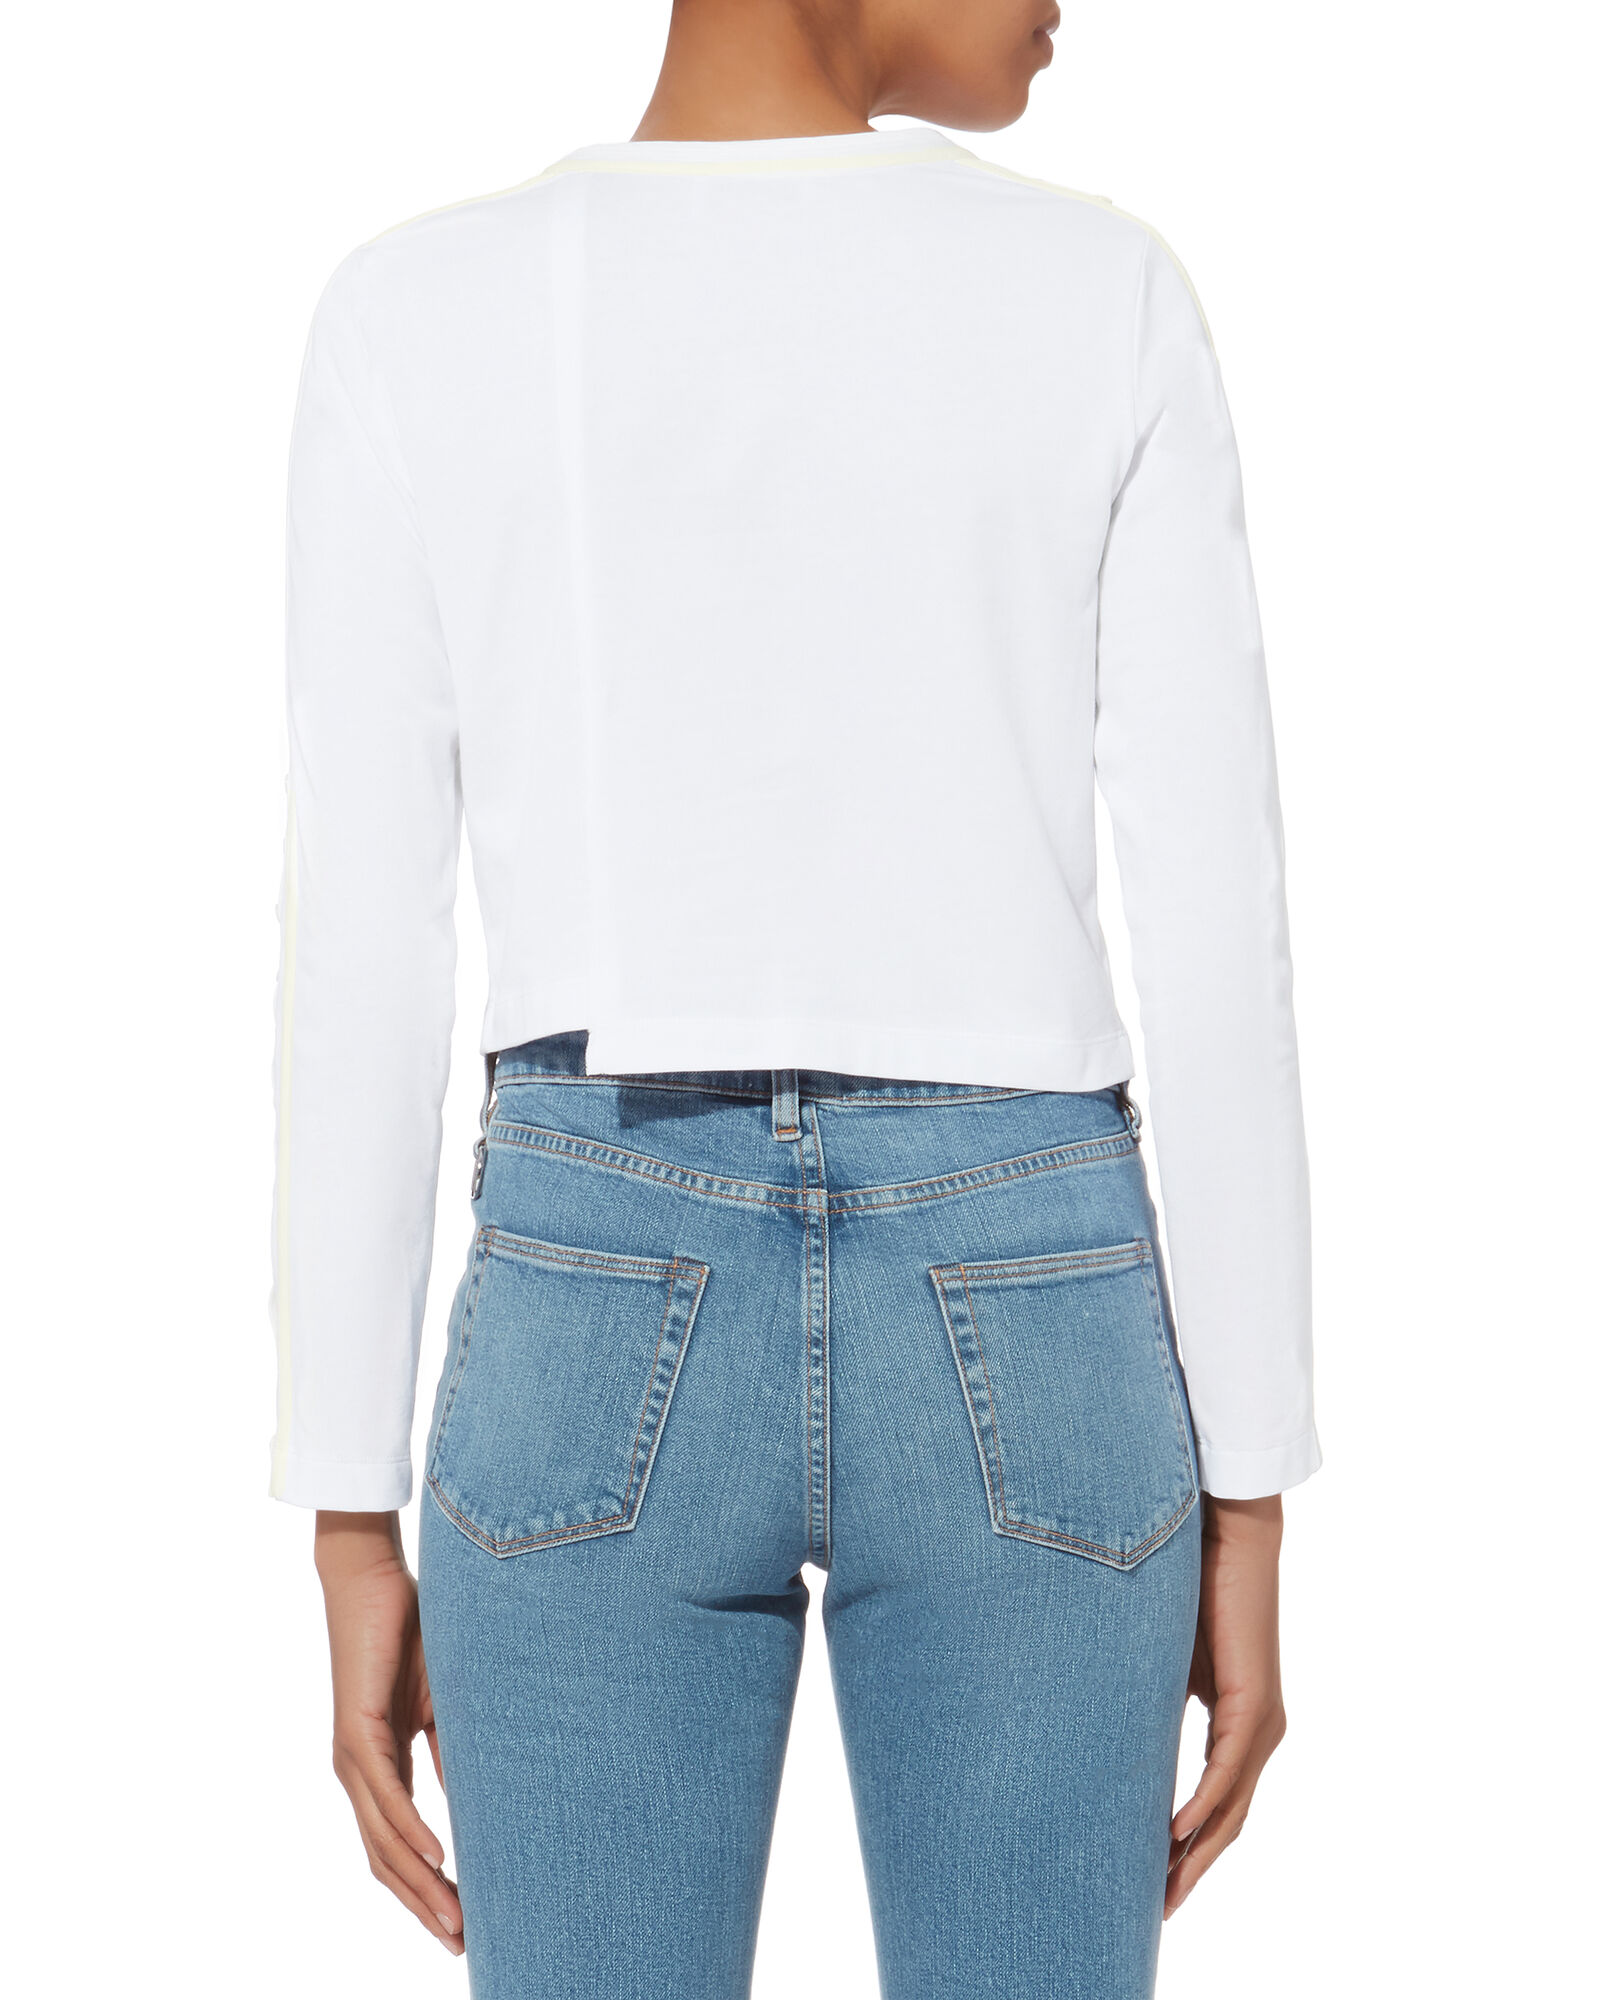 Button-Embellished Cropped T-Shirt, WHITE, hi-res